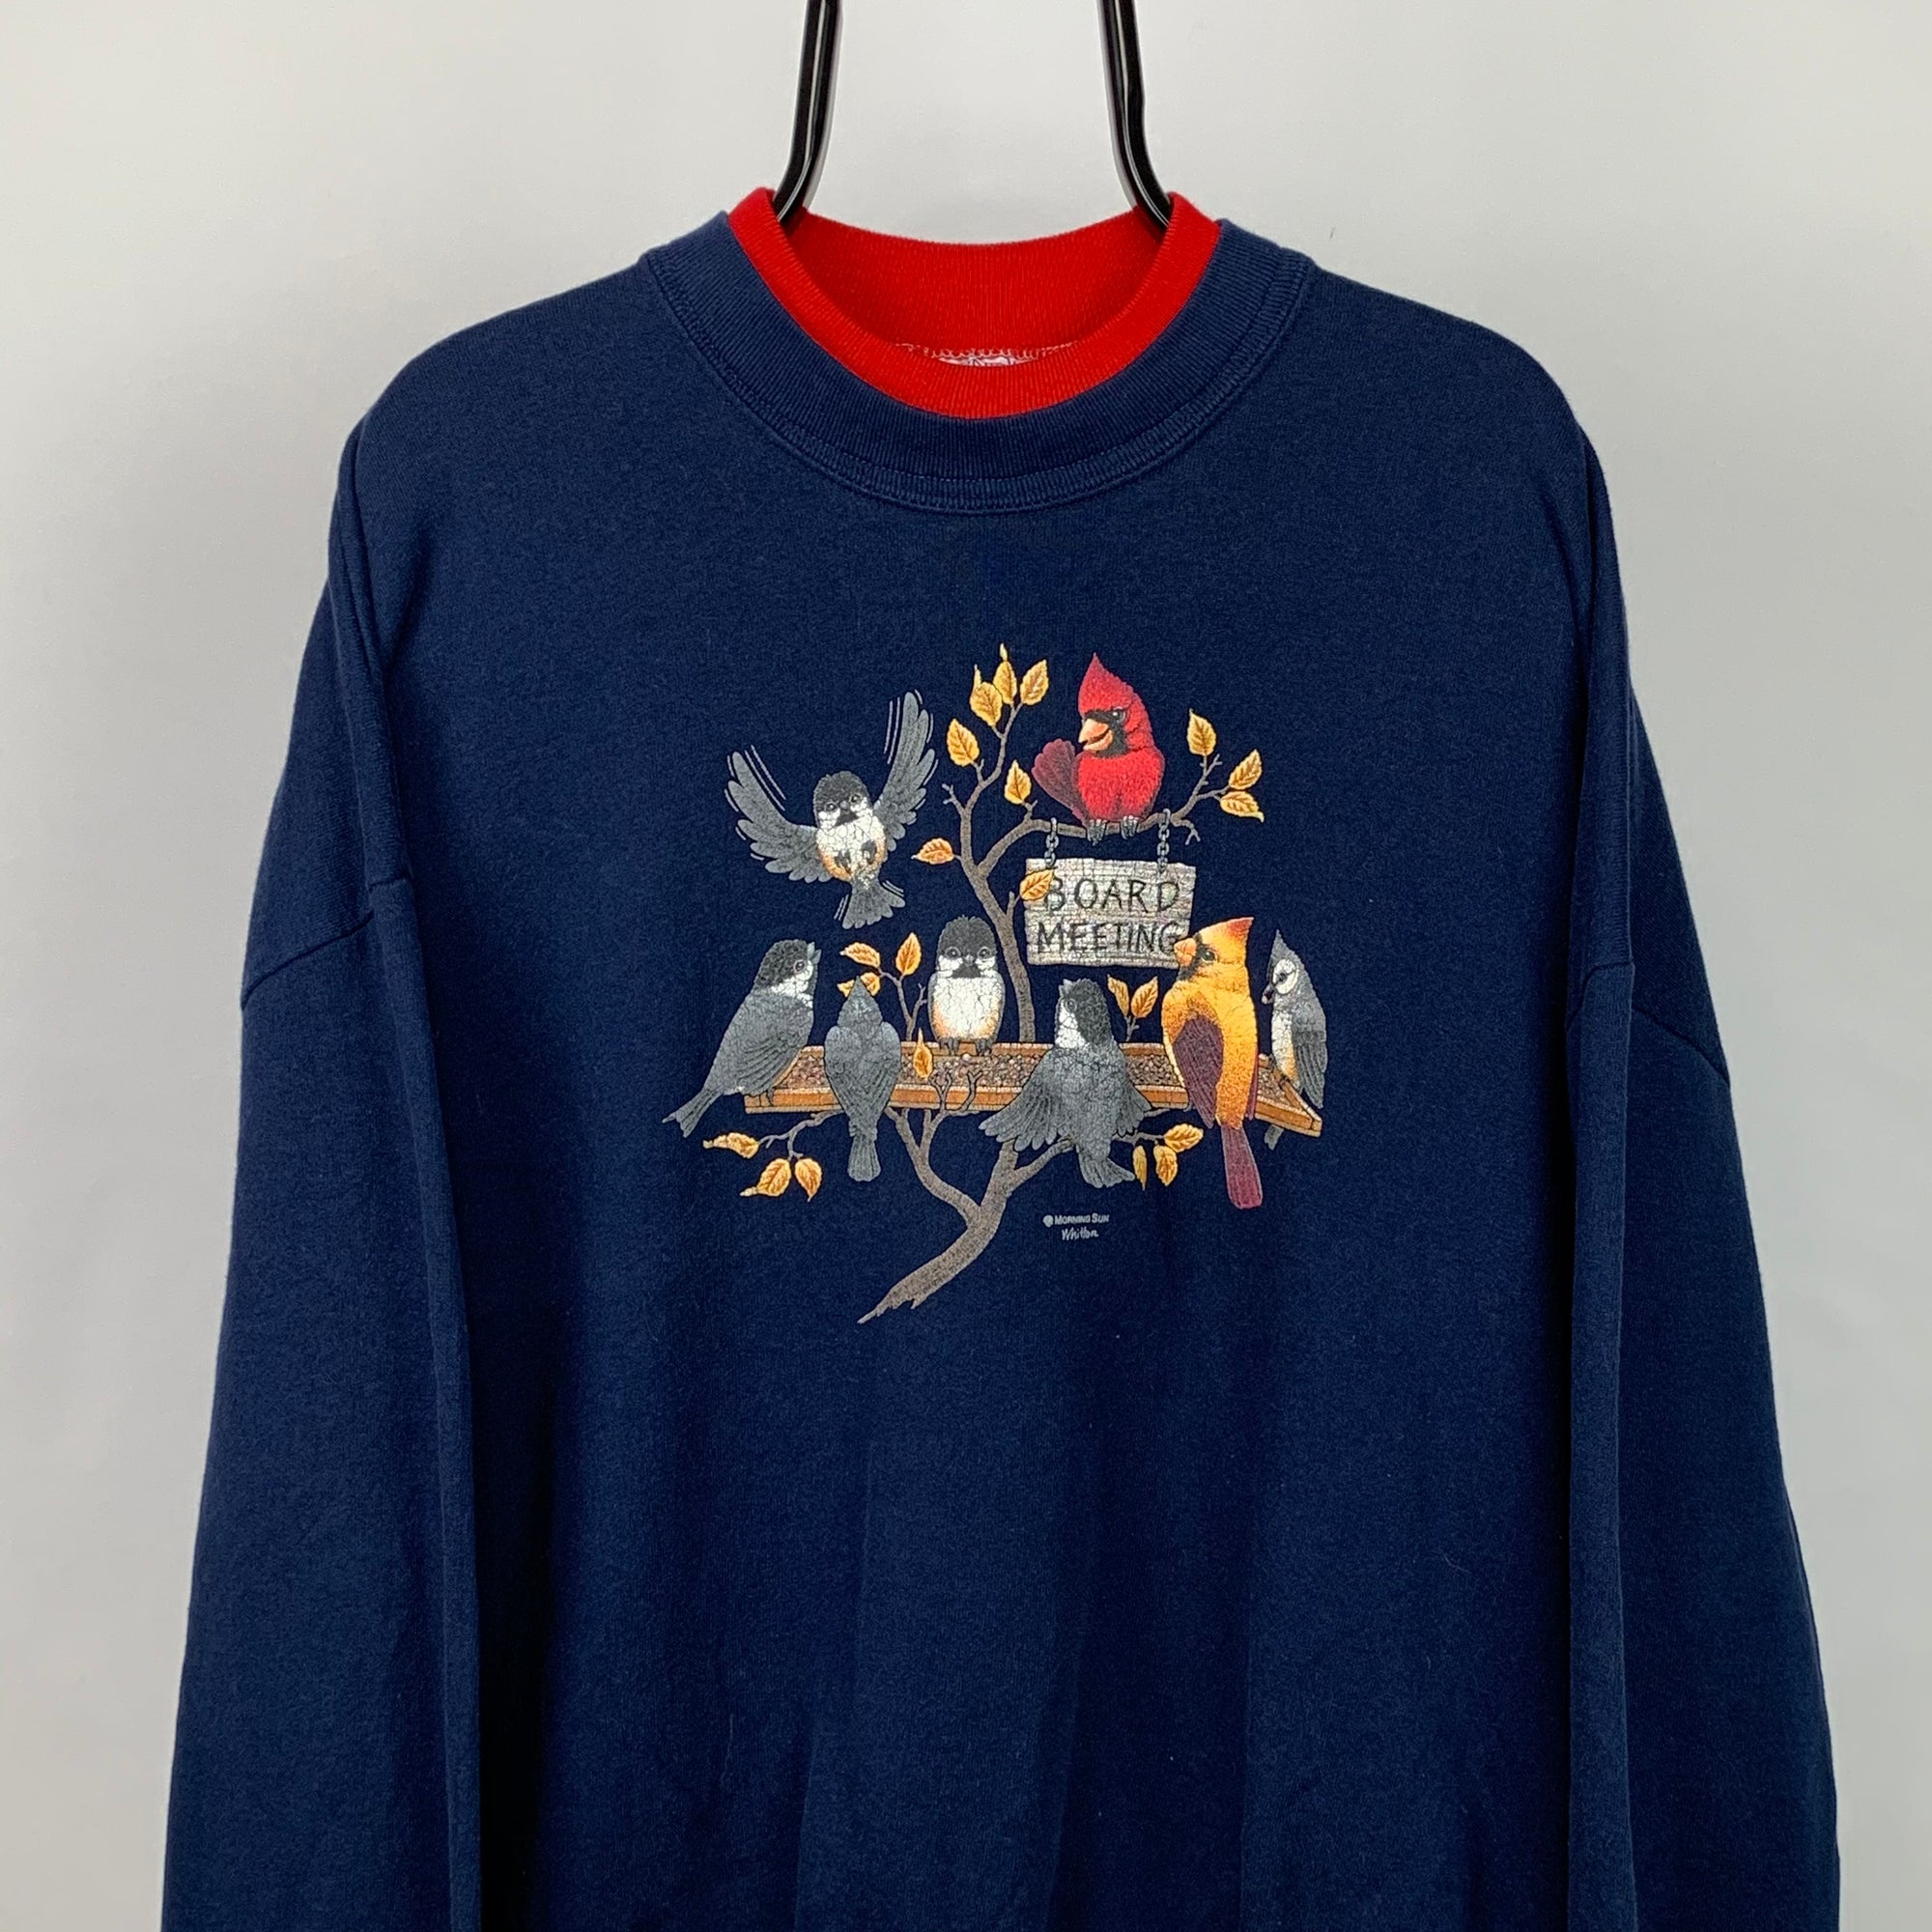 Vintage 90s Bird Print Sweatshirt - Men's Large/Women's XL